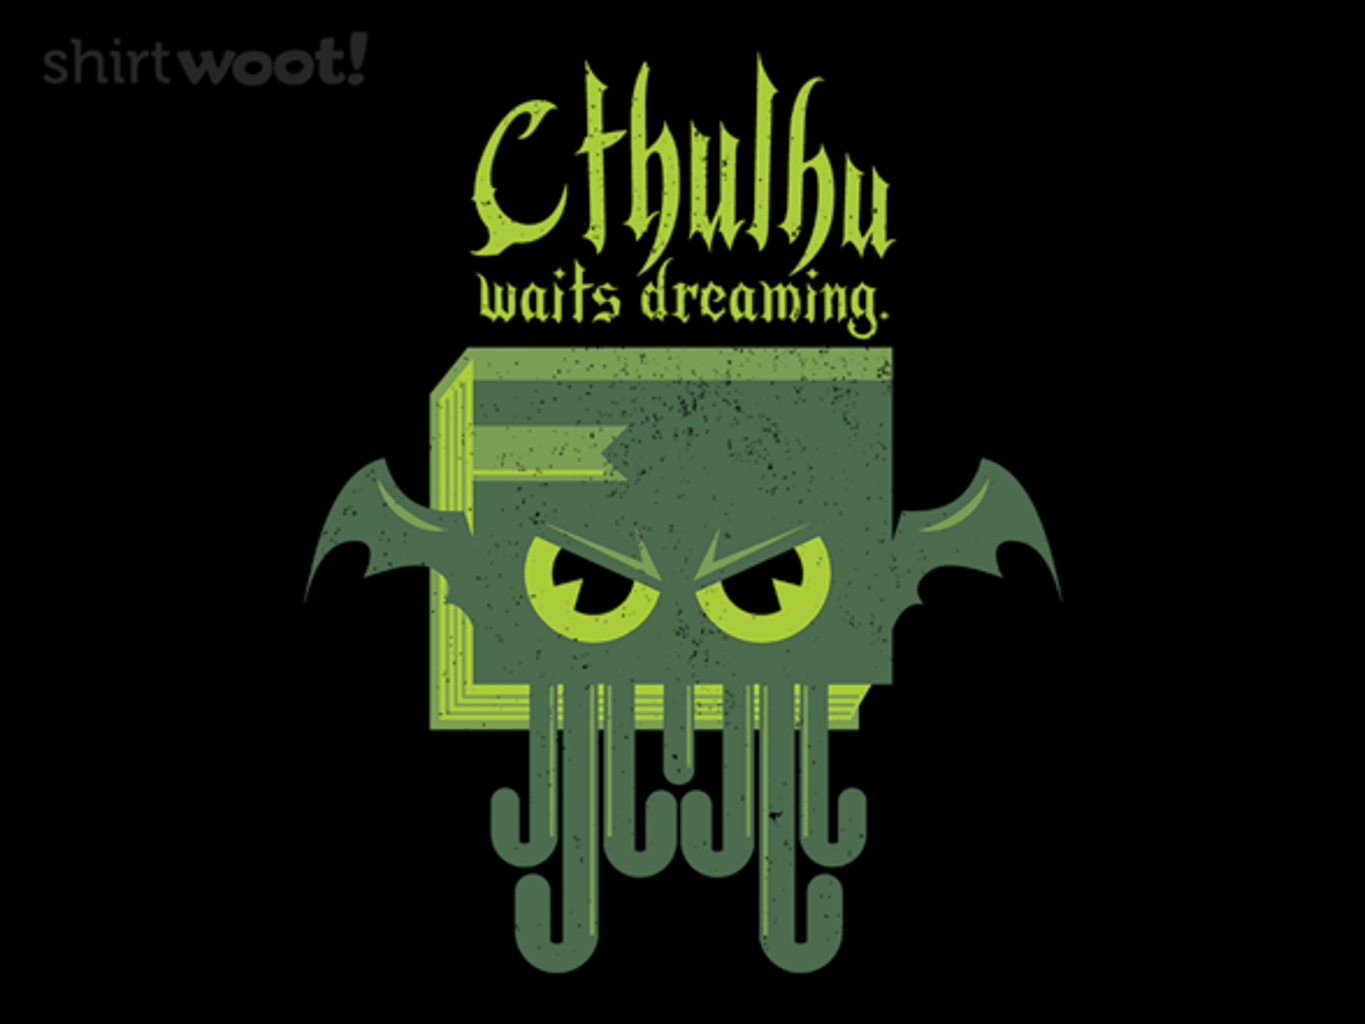 Woot!: Cthulhu Waits Dreaming